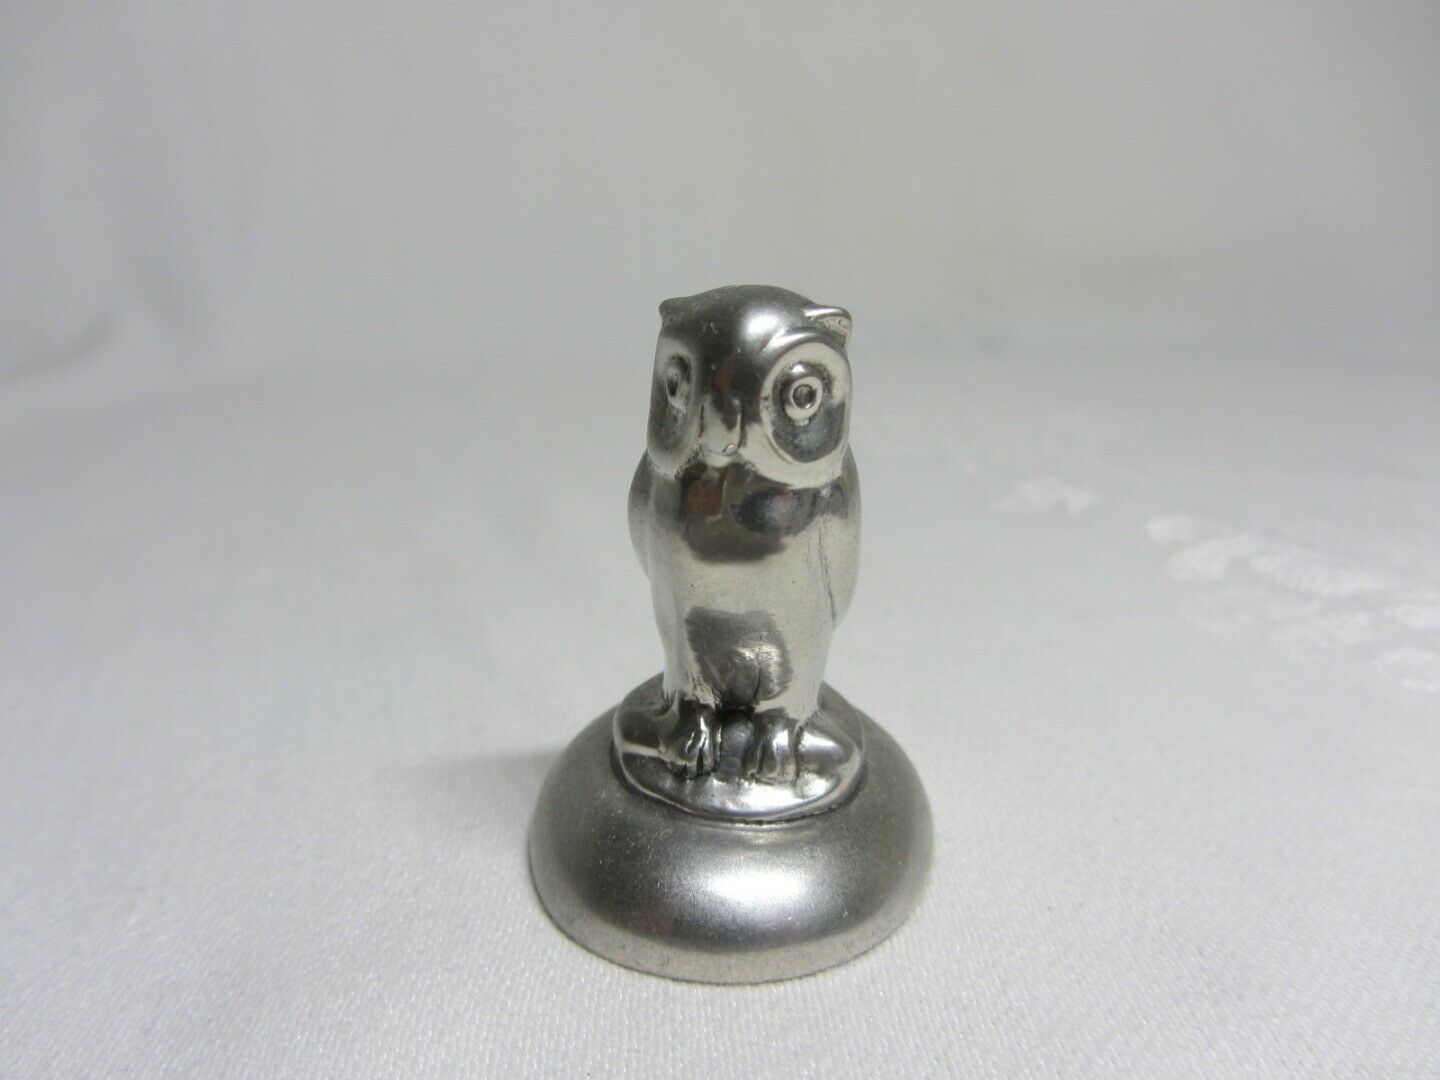 Shirley Williamsburg VA Vintage Pewter Hand Made Owl Figurine Paperweight Bird